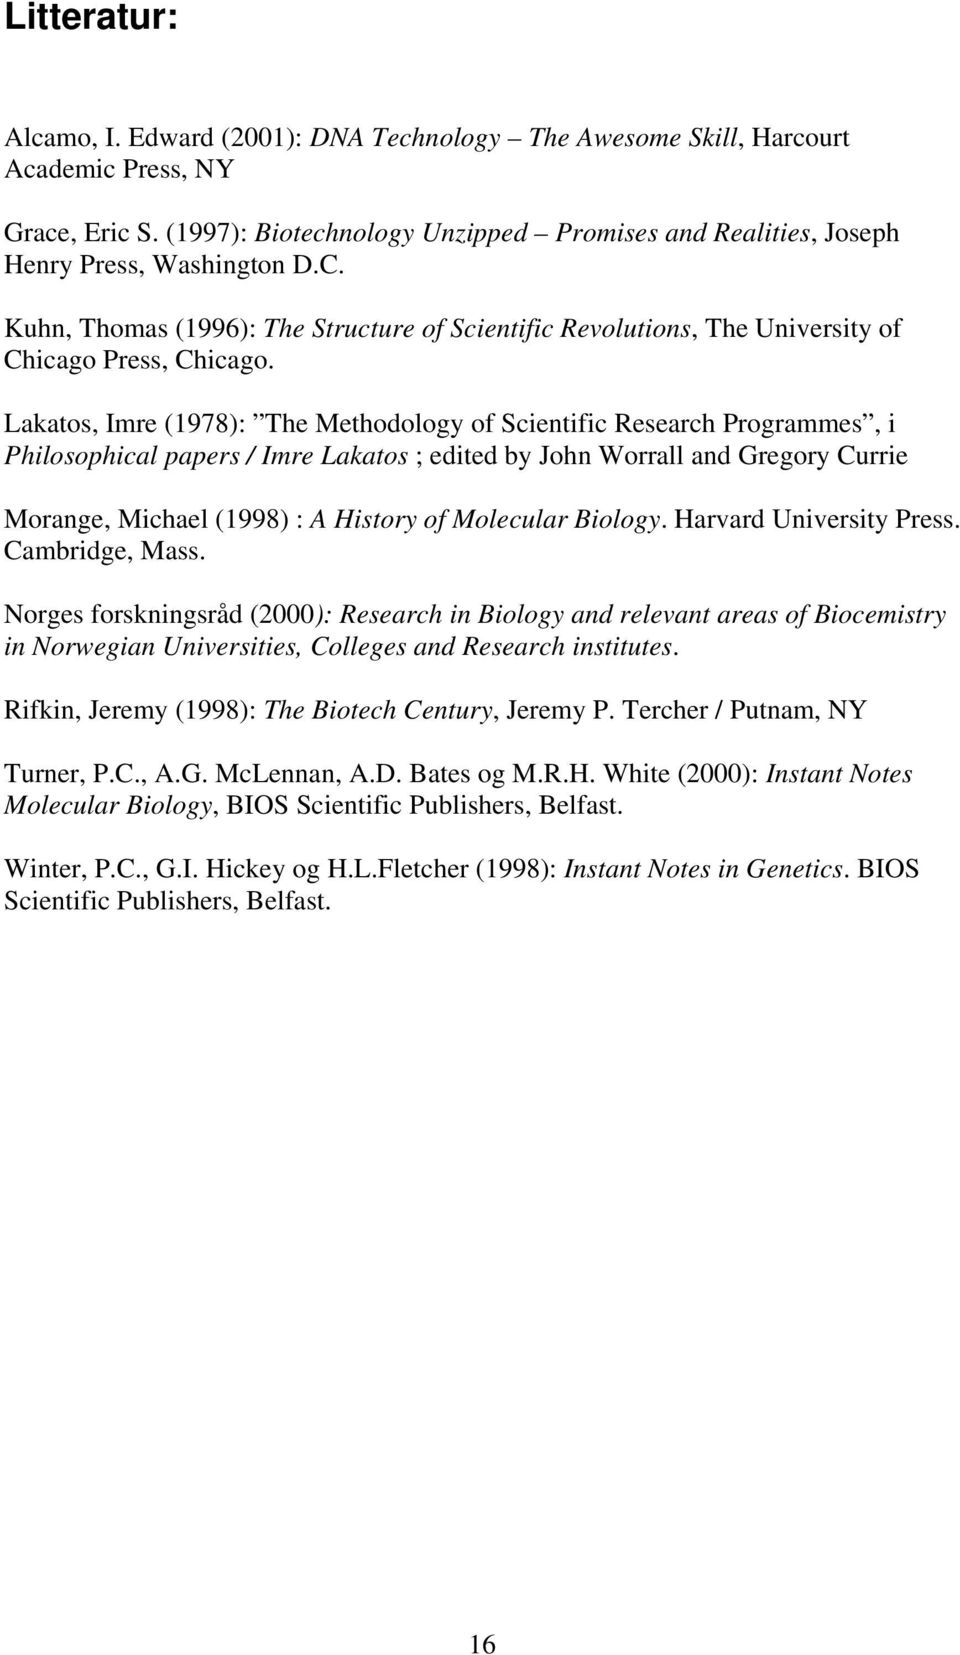 Lakatos, Imre (1978): The Methodology of Scientific Research Programmes, i Philosophical papers / Imre Lakatos ; edited by John Worrall and Gregory Currie Morange, Michael (1998) : A History of